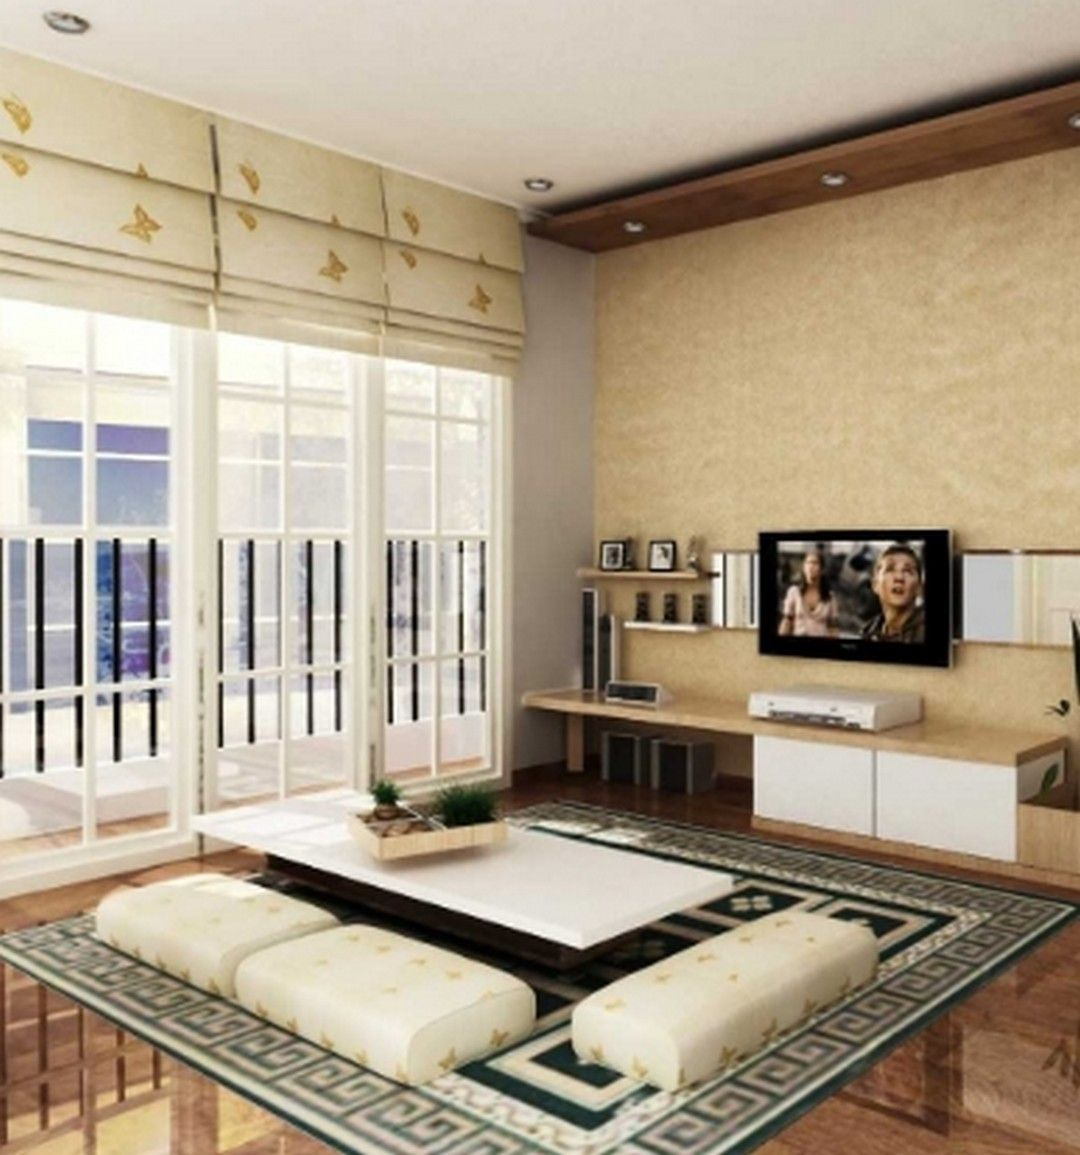 6 Living Room Interior Without Chairs In 2020 Living